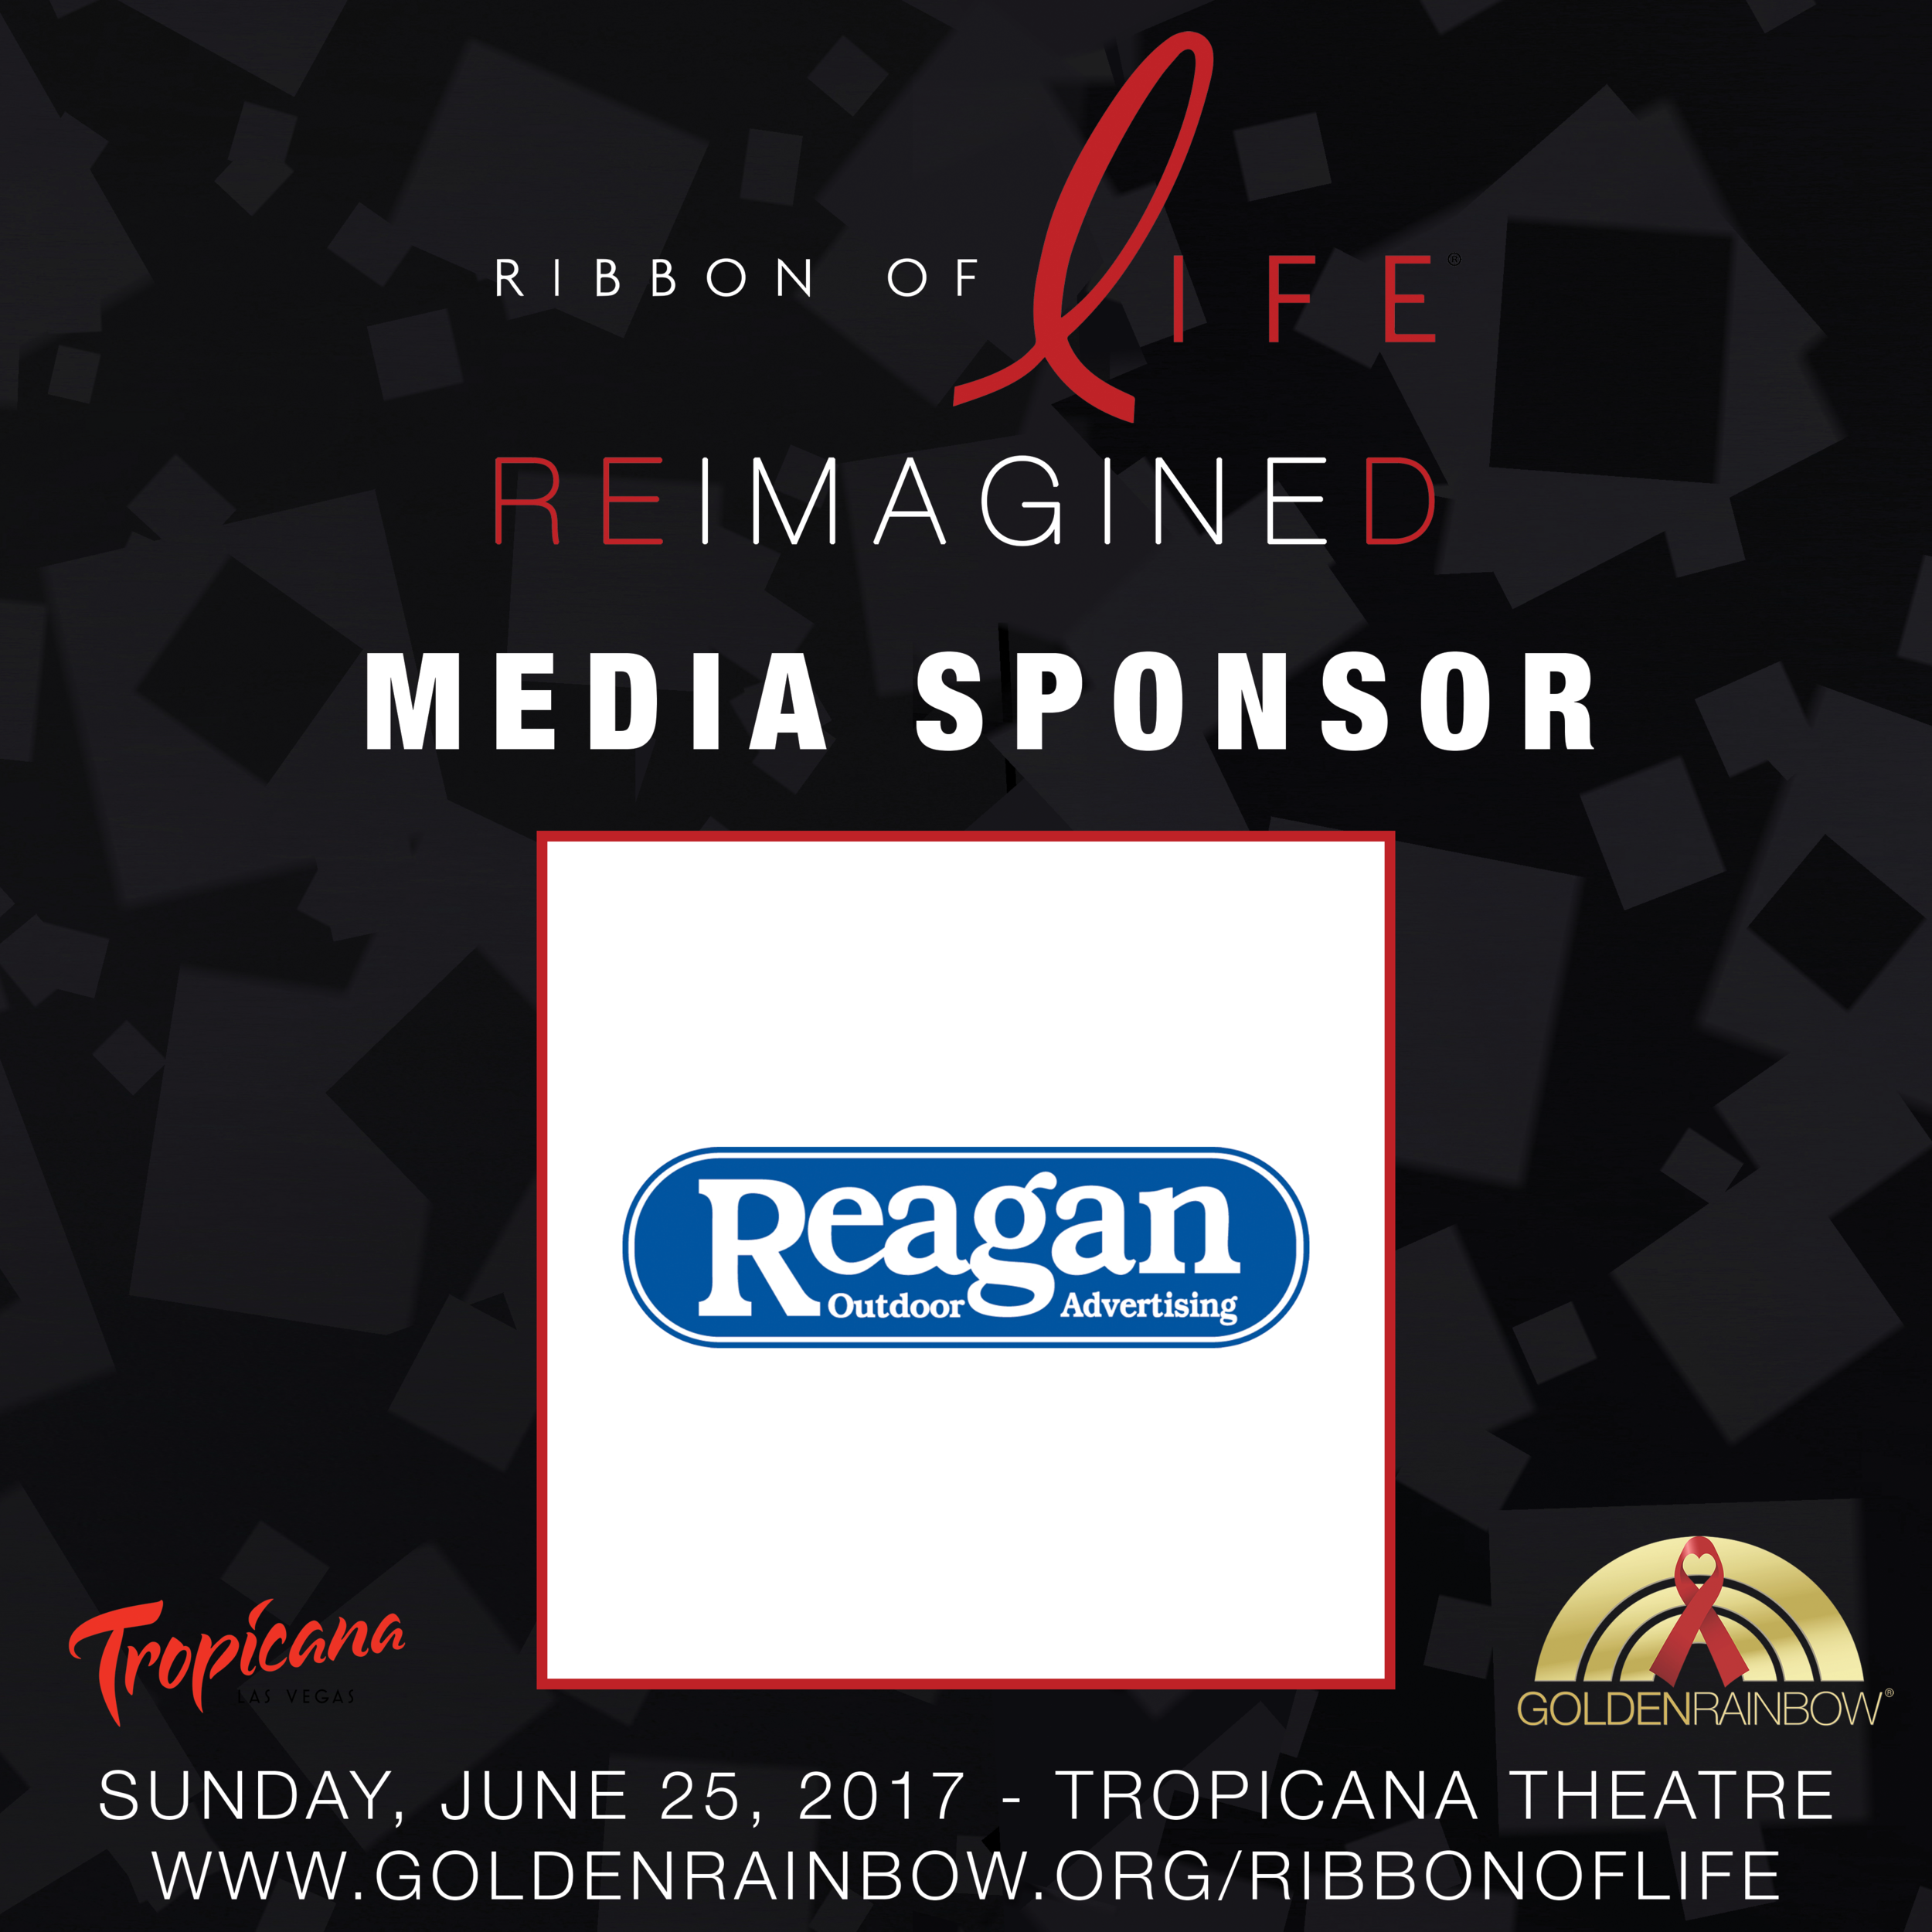 Reagan Outdoor Media